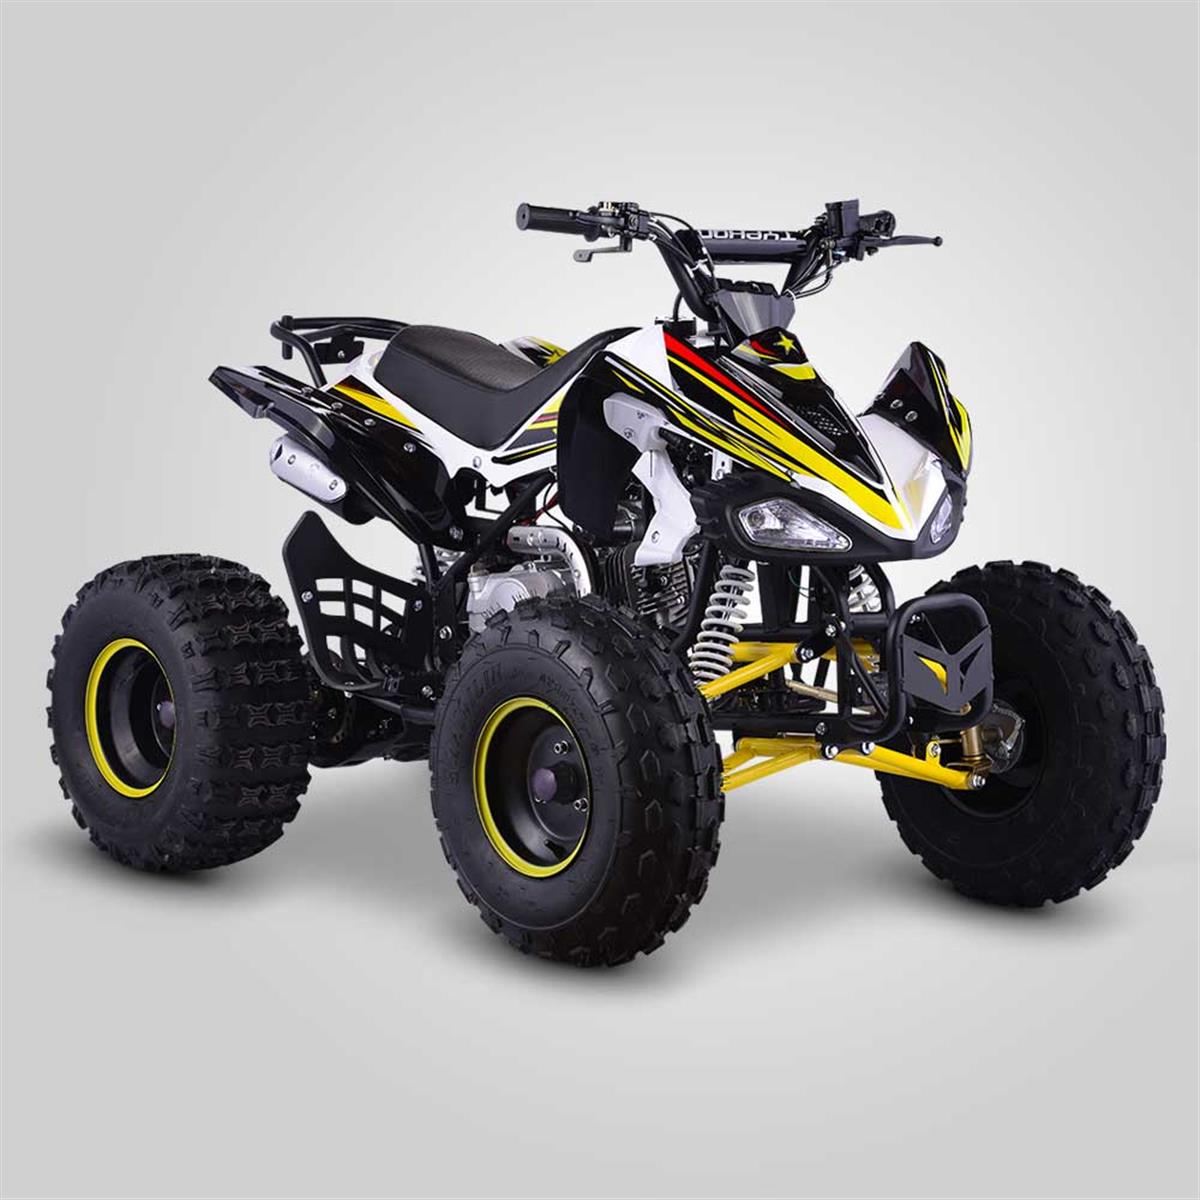 quad enfant typhon 125cc jaune smallmx dirt bike pit bike quads minimoto. Black Bedroom Furniture Sets. Home Design Ideas